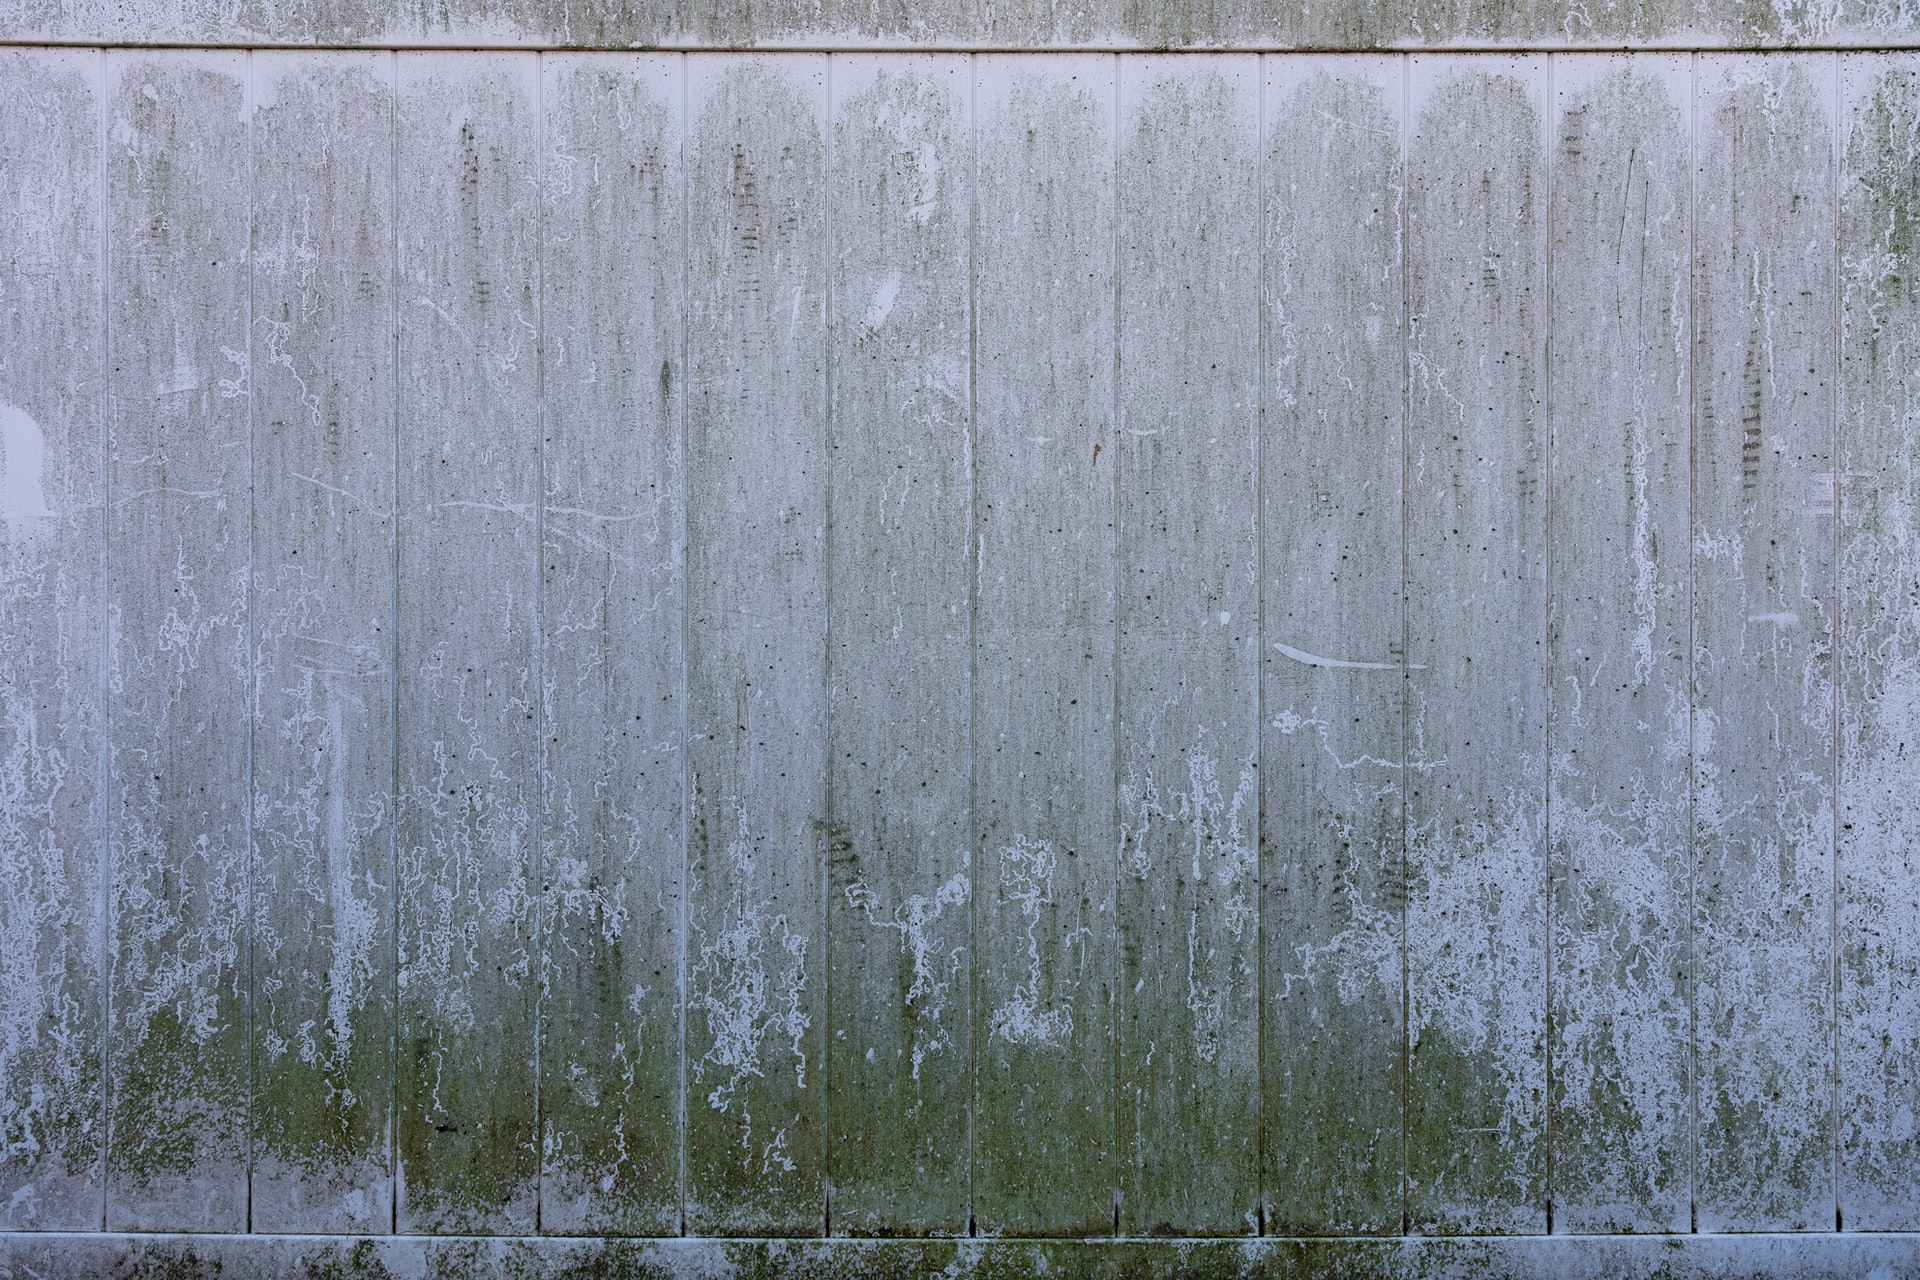 Commercial Mold Remediation Header Image